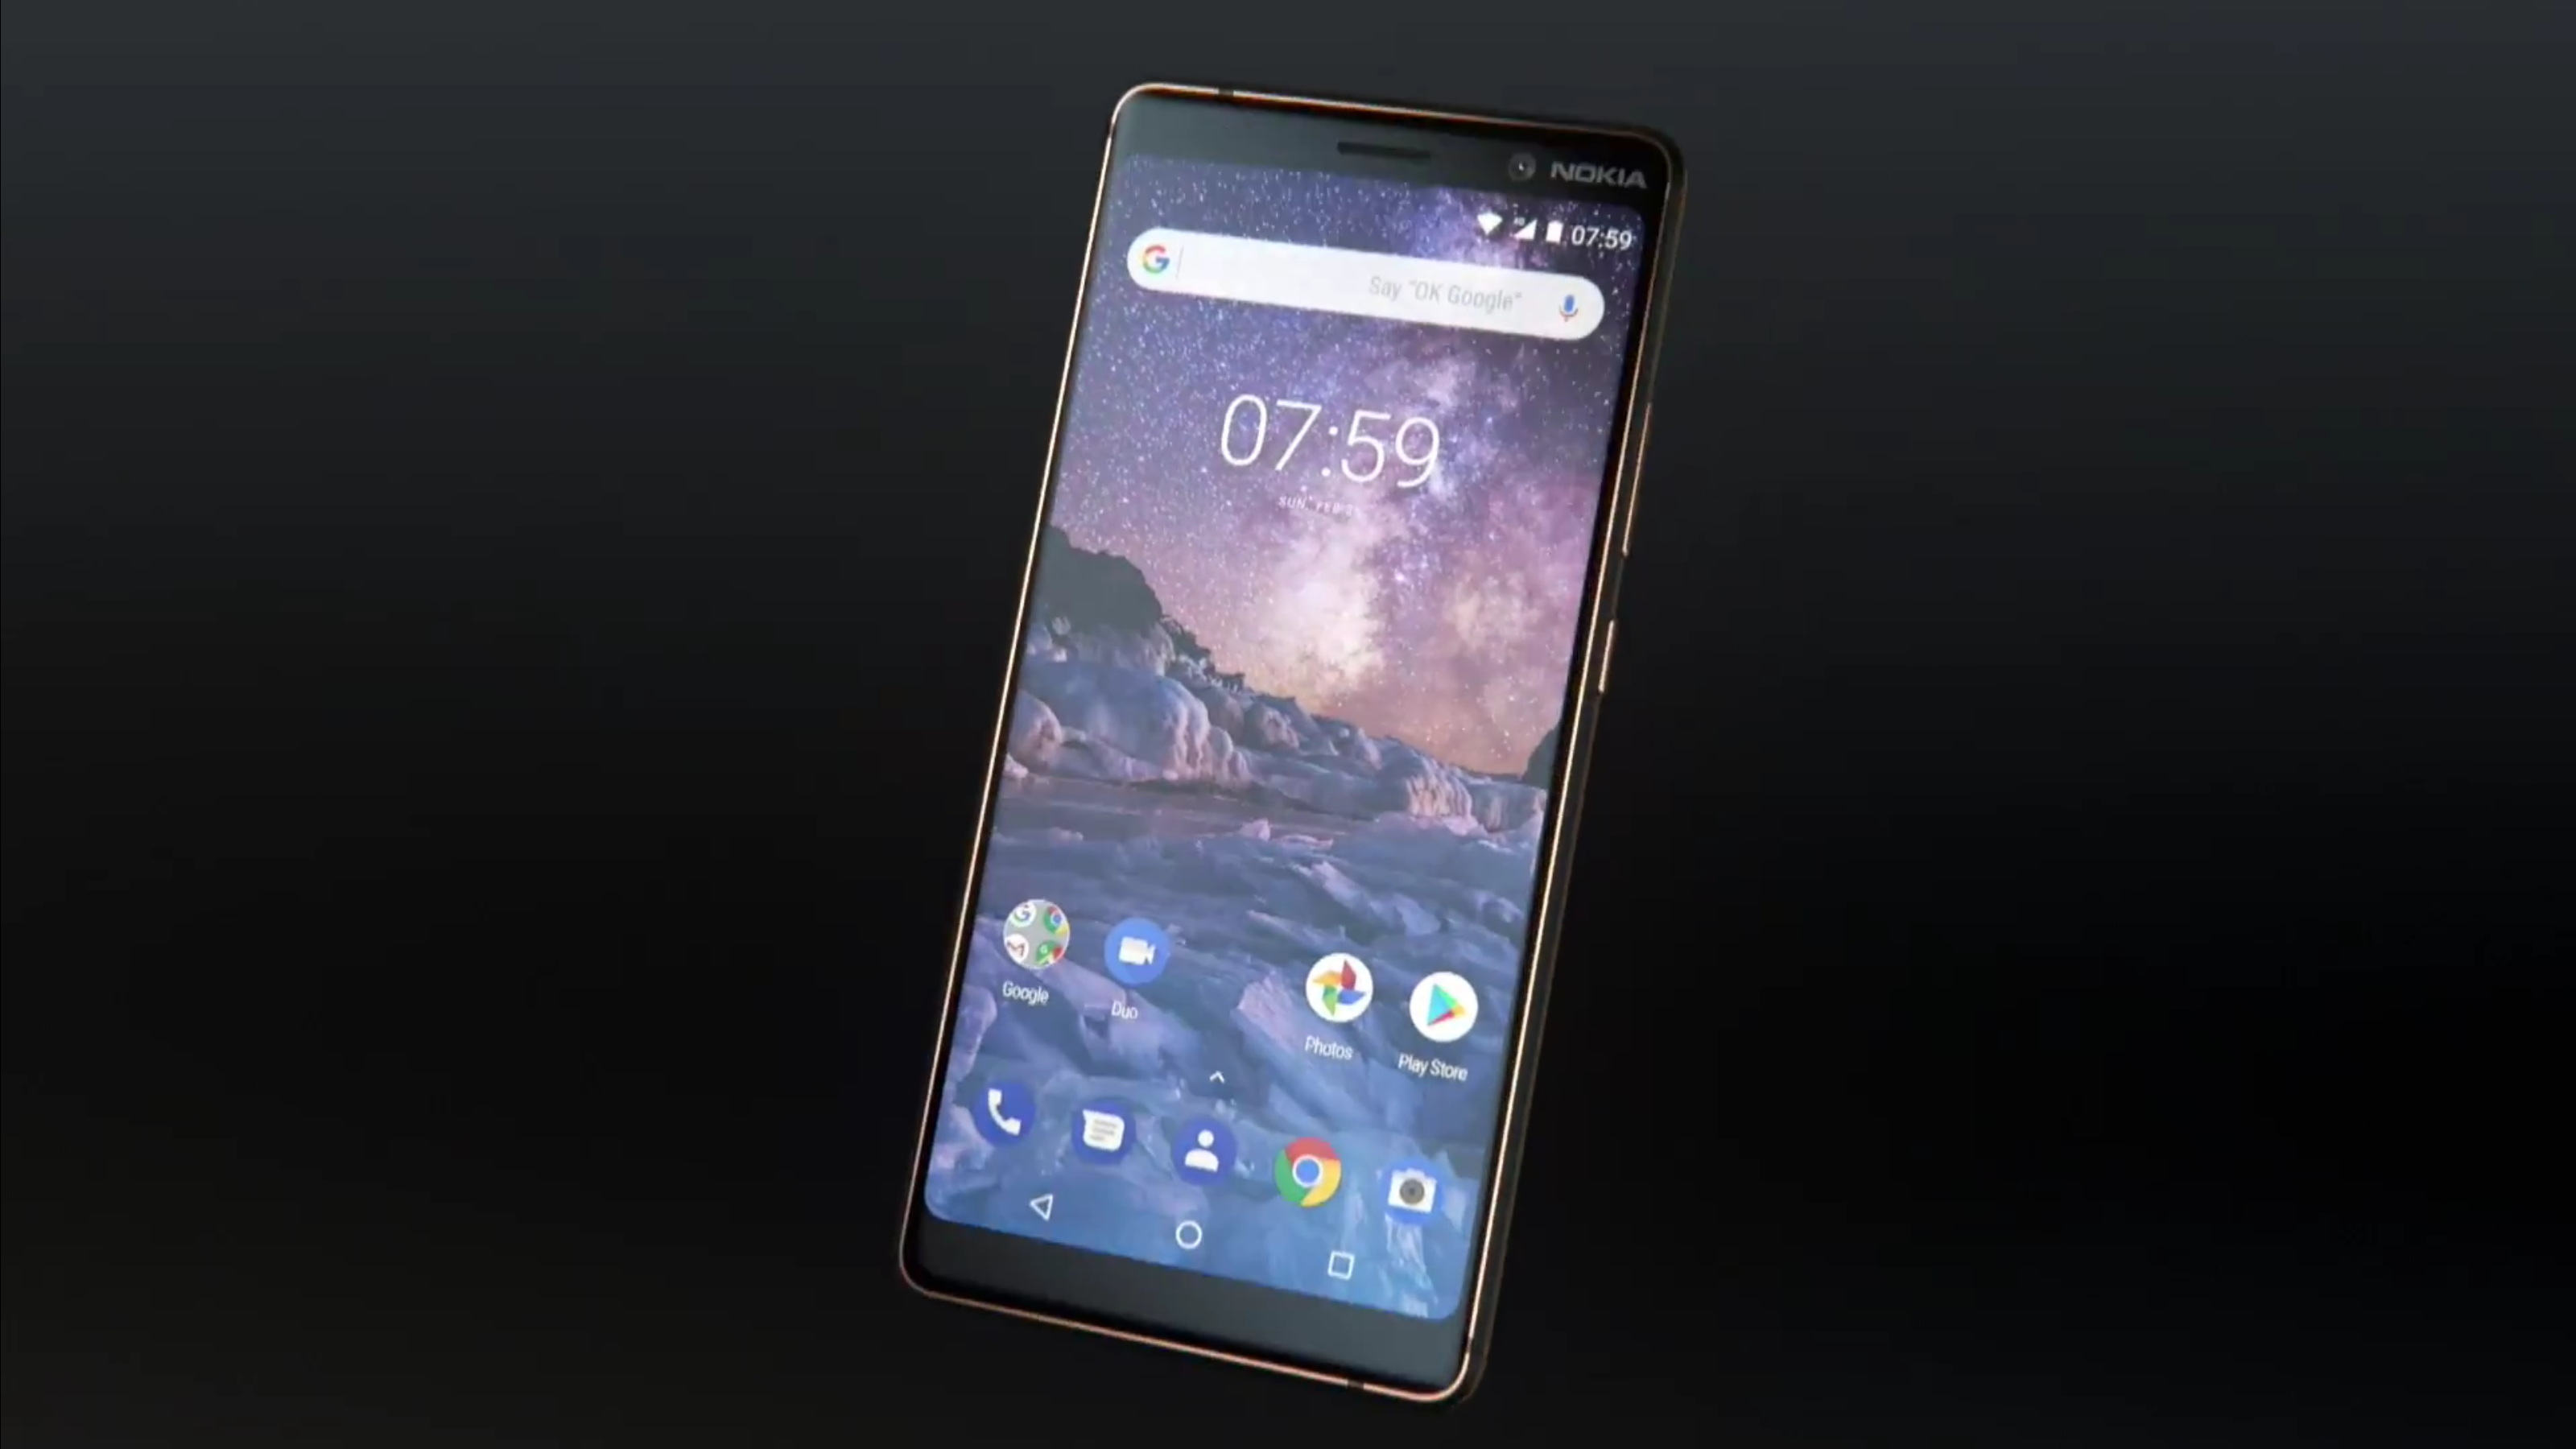 New Nokia 6 and 7 Plus embrace Android One as Android Go